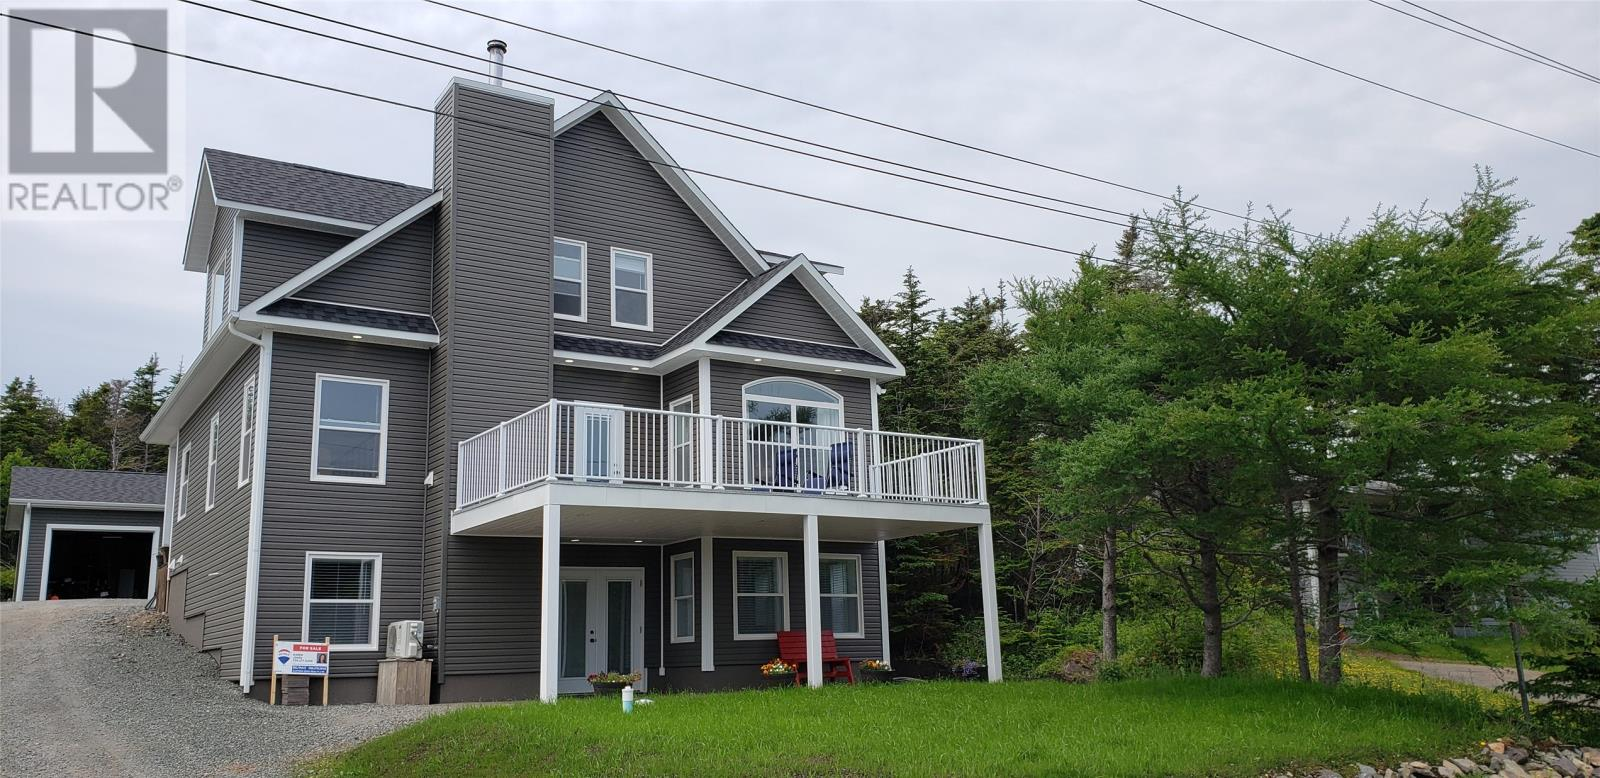 1198902, 54 Ville Marie Drive, Marystown